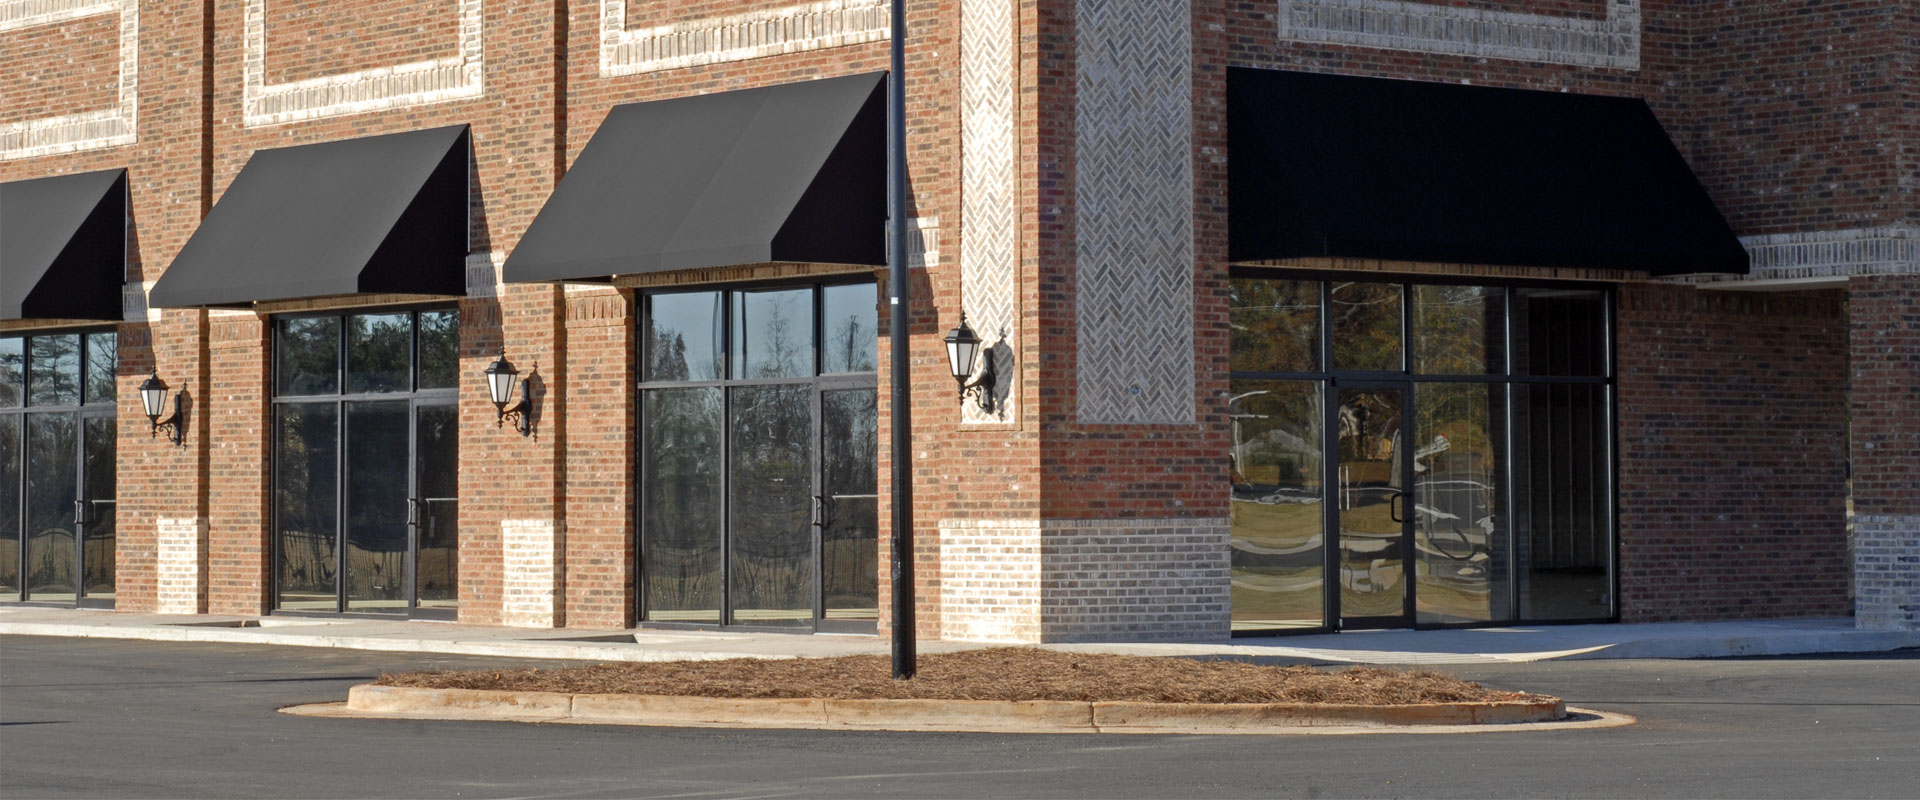 Need to Customize Your Commercial Property?